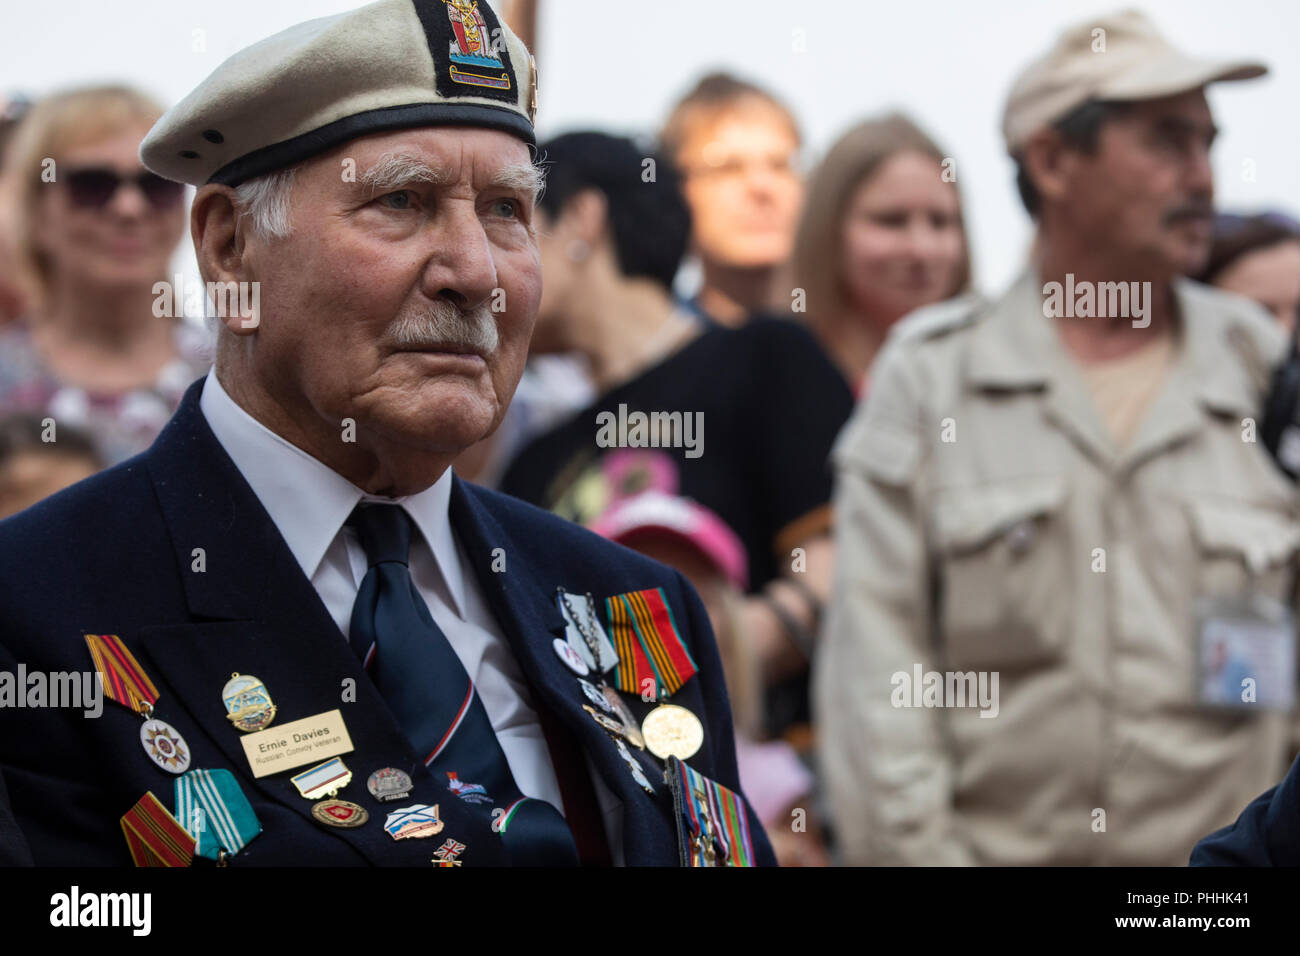 Moscow, Russia. 1st September 2018. The Royal Navy veteran and a member of the Arctic Convoy Club Mr Ernest Davies takes part of the 2018 Spasskaya Tower International Military Music Festival during performance the Brentwood Imperial Youth Band at the Tsaritsyno park in Moscow Credit: Nikolay Vinokurov/Alamy Live News - Stock Image